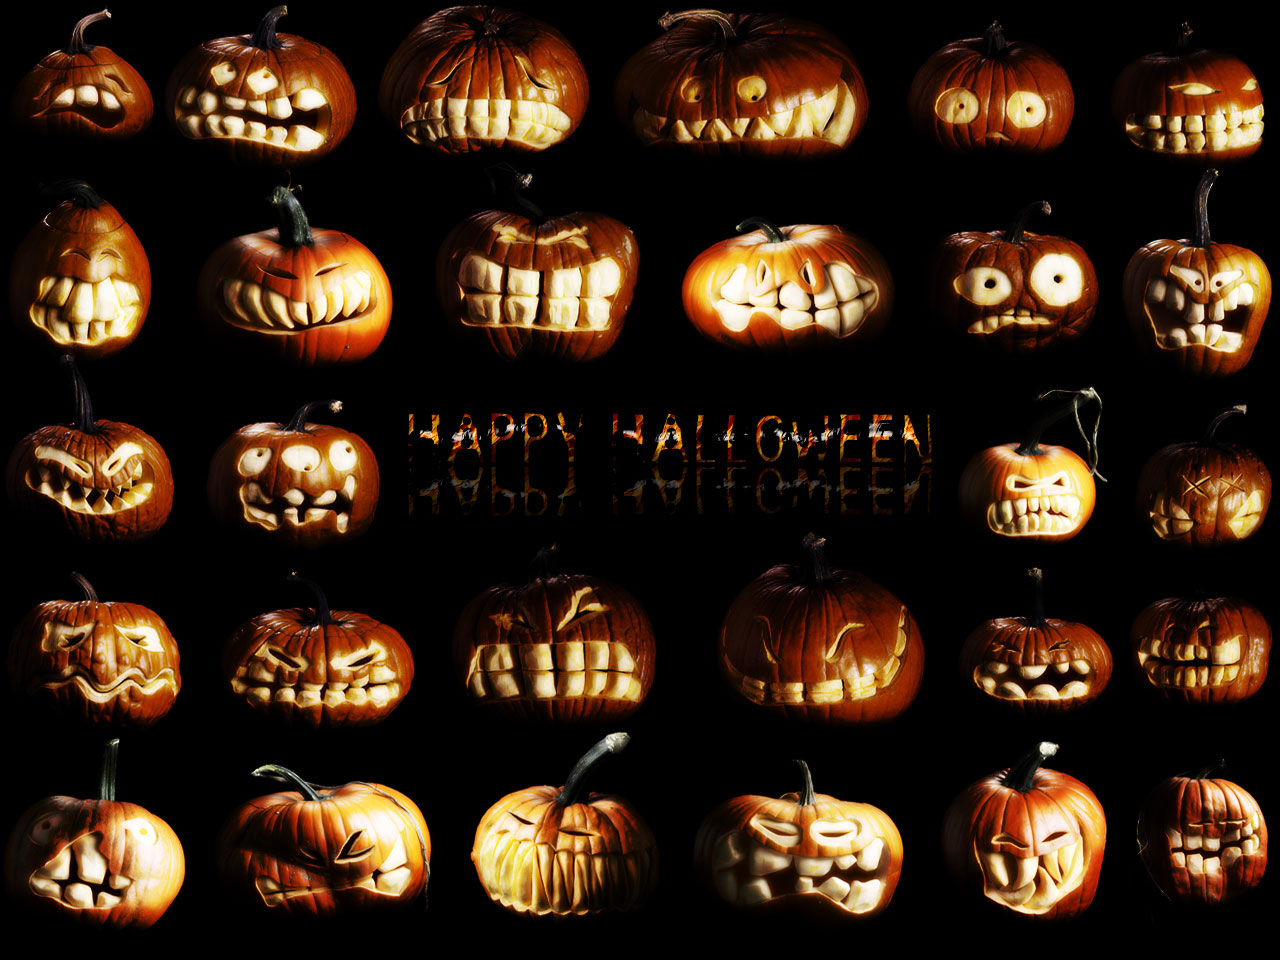 Scary Halloween Backgrounds Wallpaper Collection 2014 1280x960